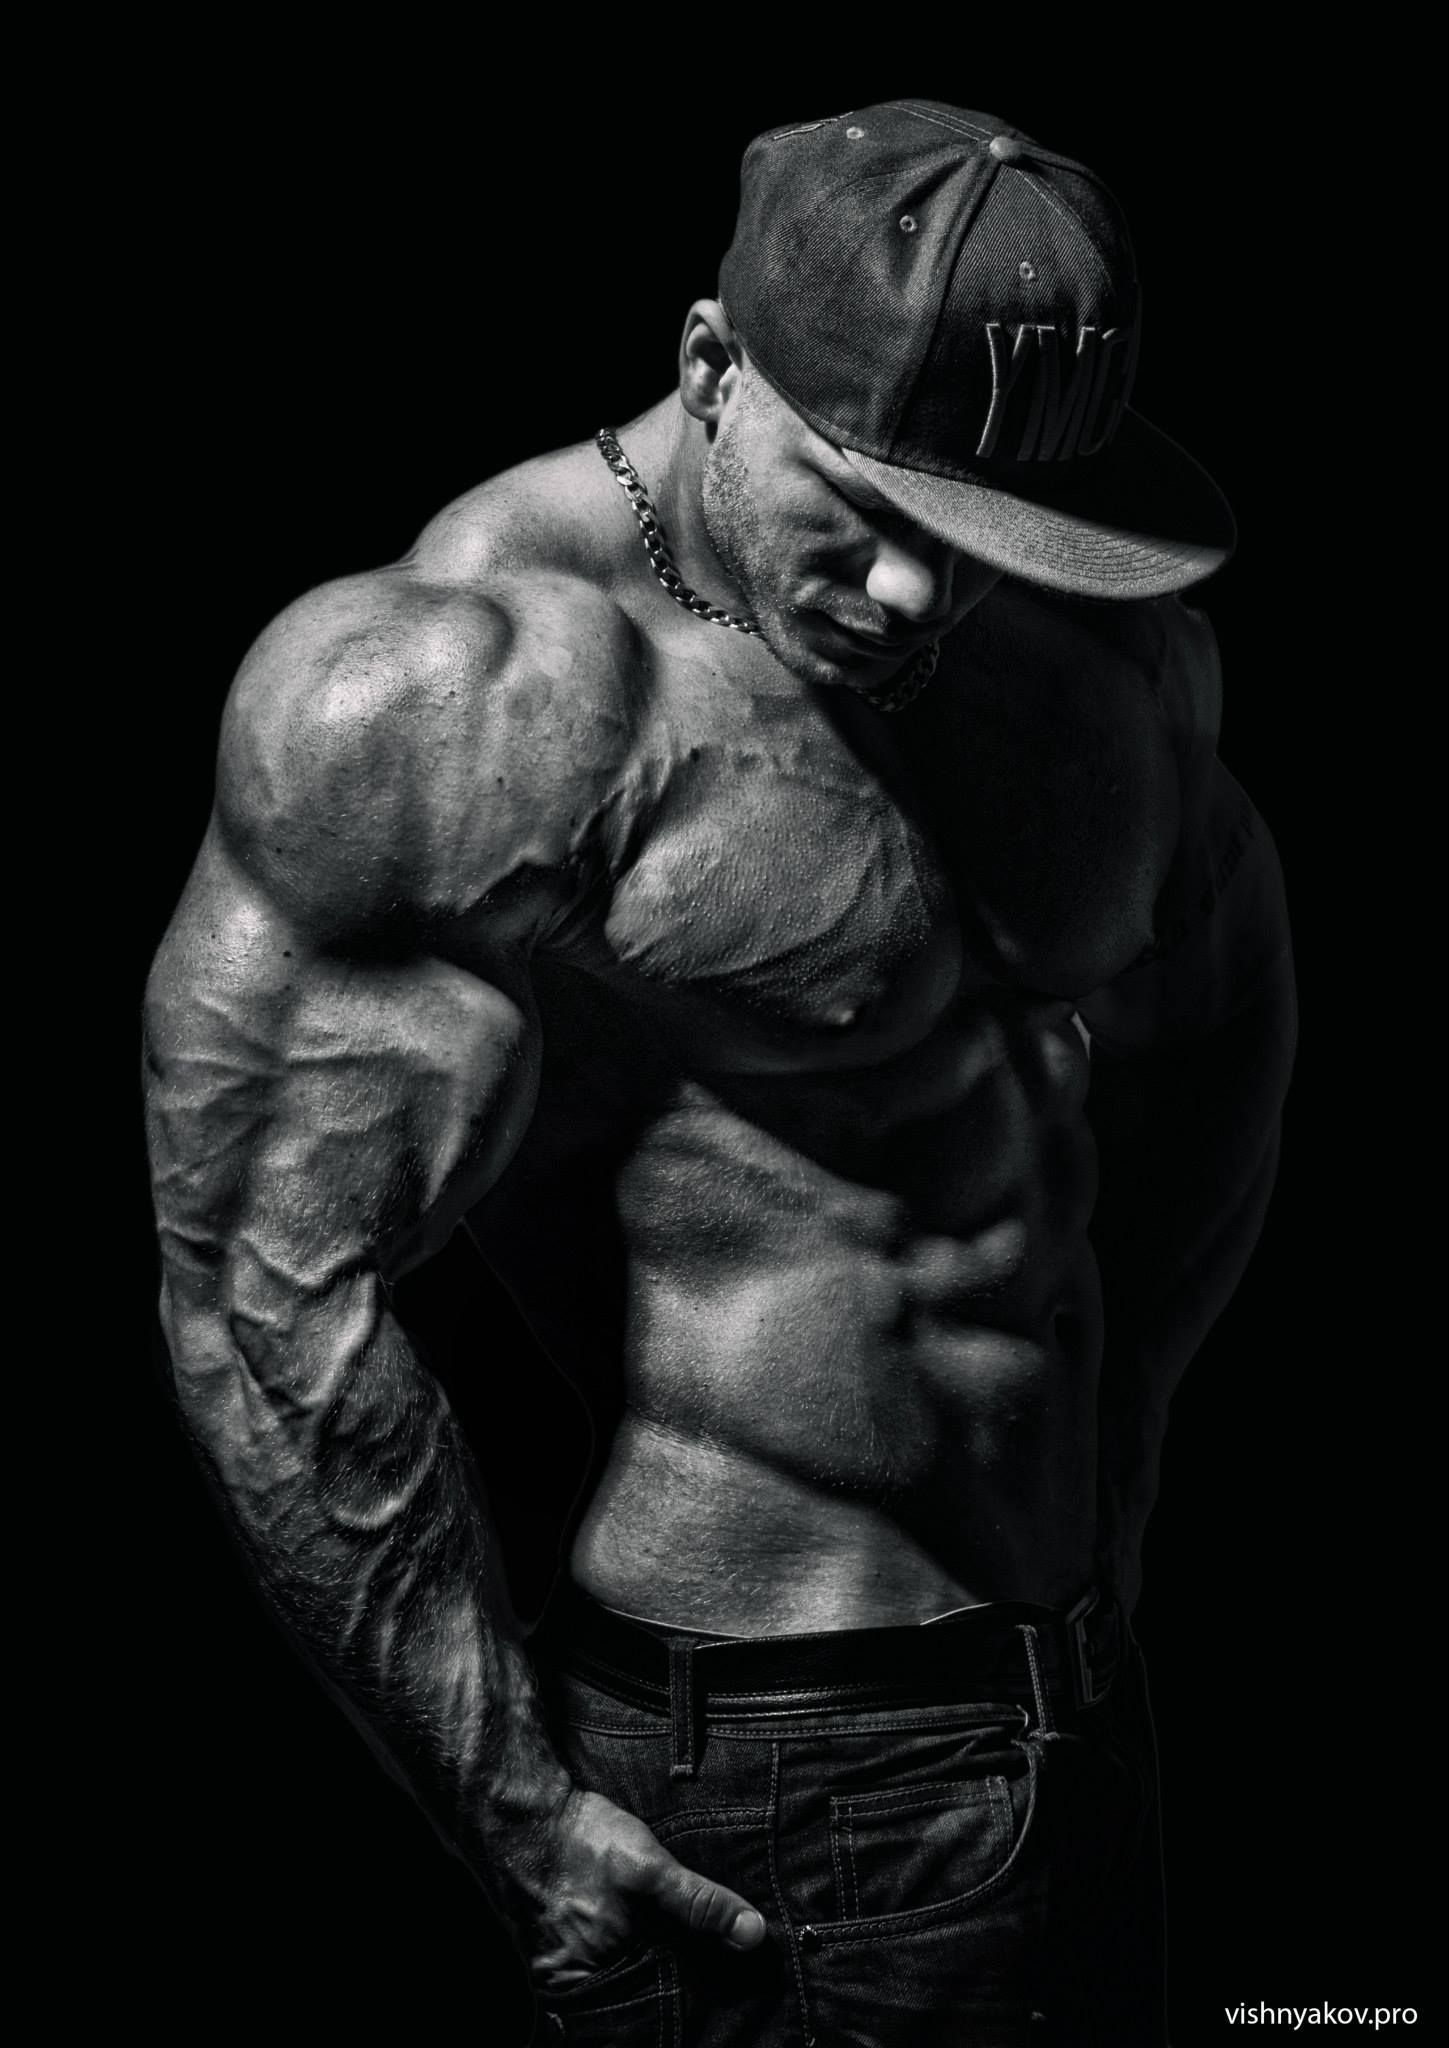 Black And White Fitness Motivation Pictures Fitness Motivation Fun Workouts